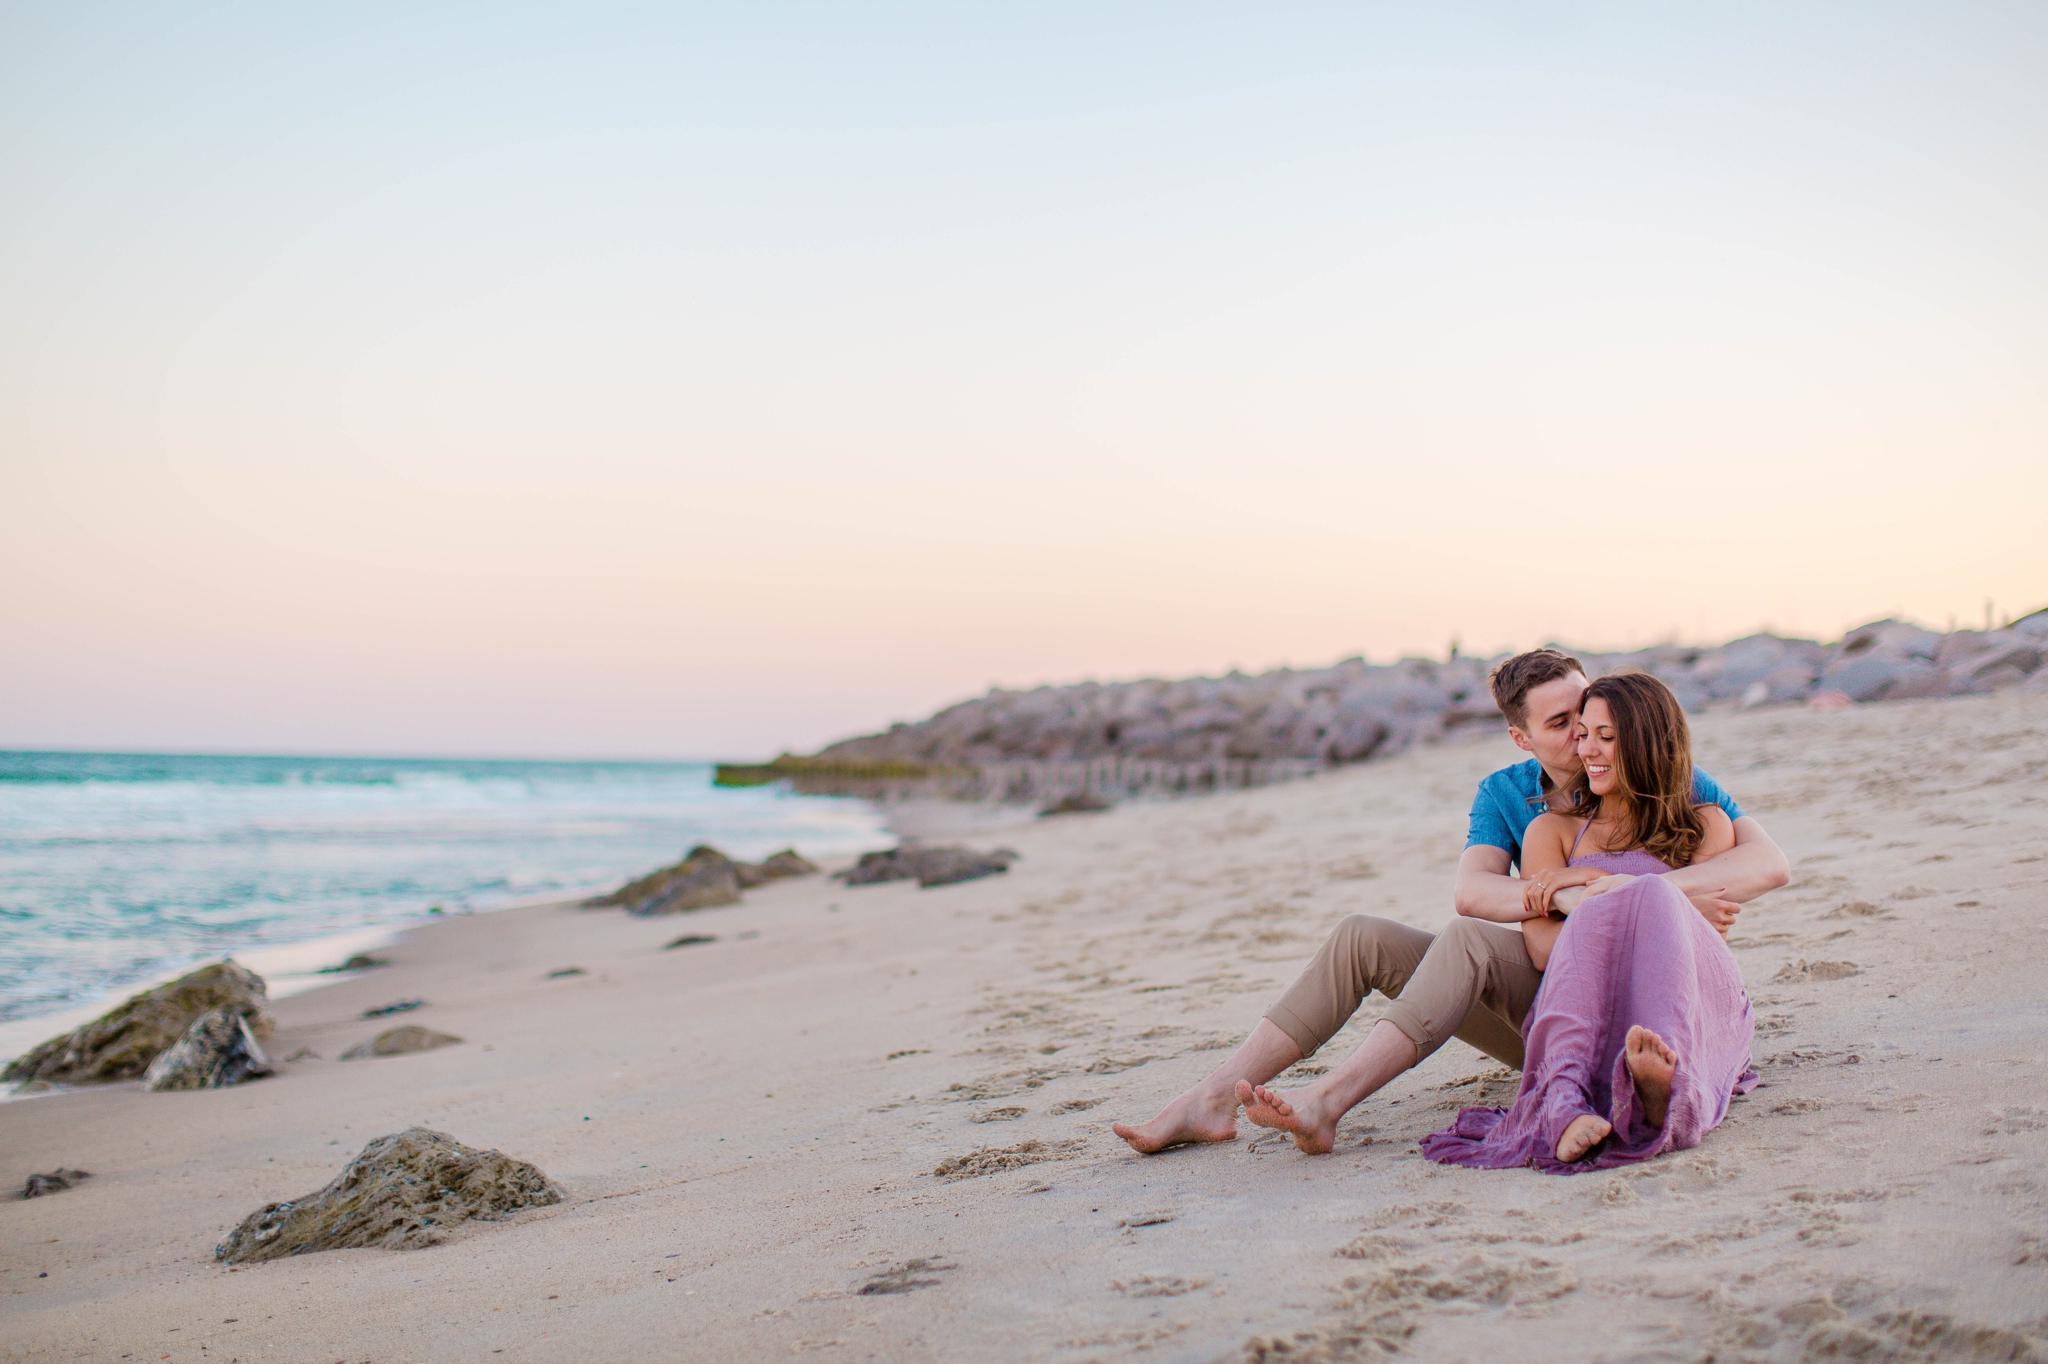 man and woman sitting in the sand - - Woman is in a flowy pastel maxi dress - candid and unposed golden light session - beach engagement photographer in honolulu, oahu, hawaii - johanna dye photography